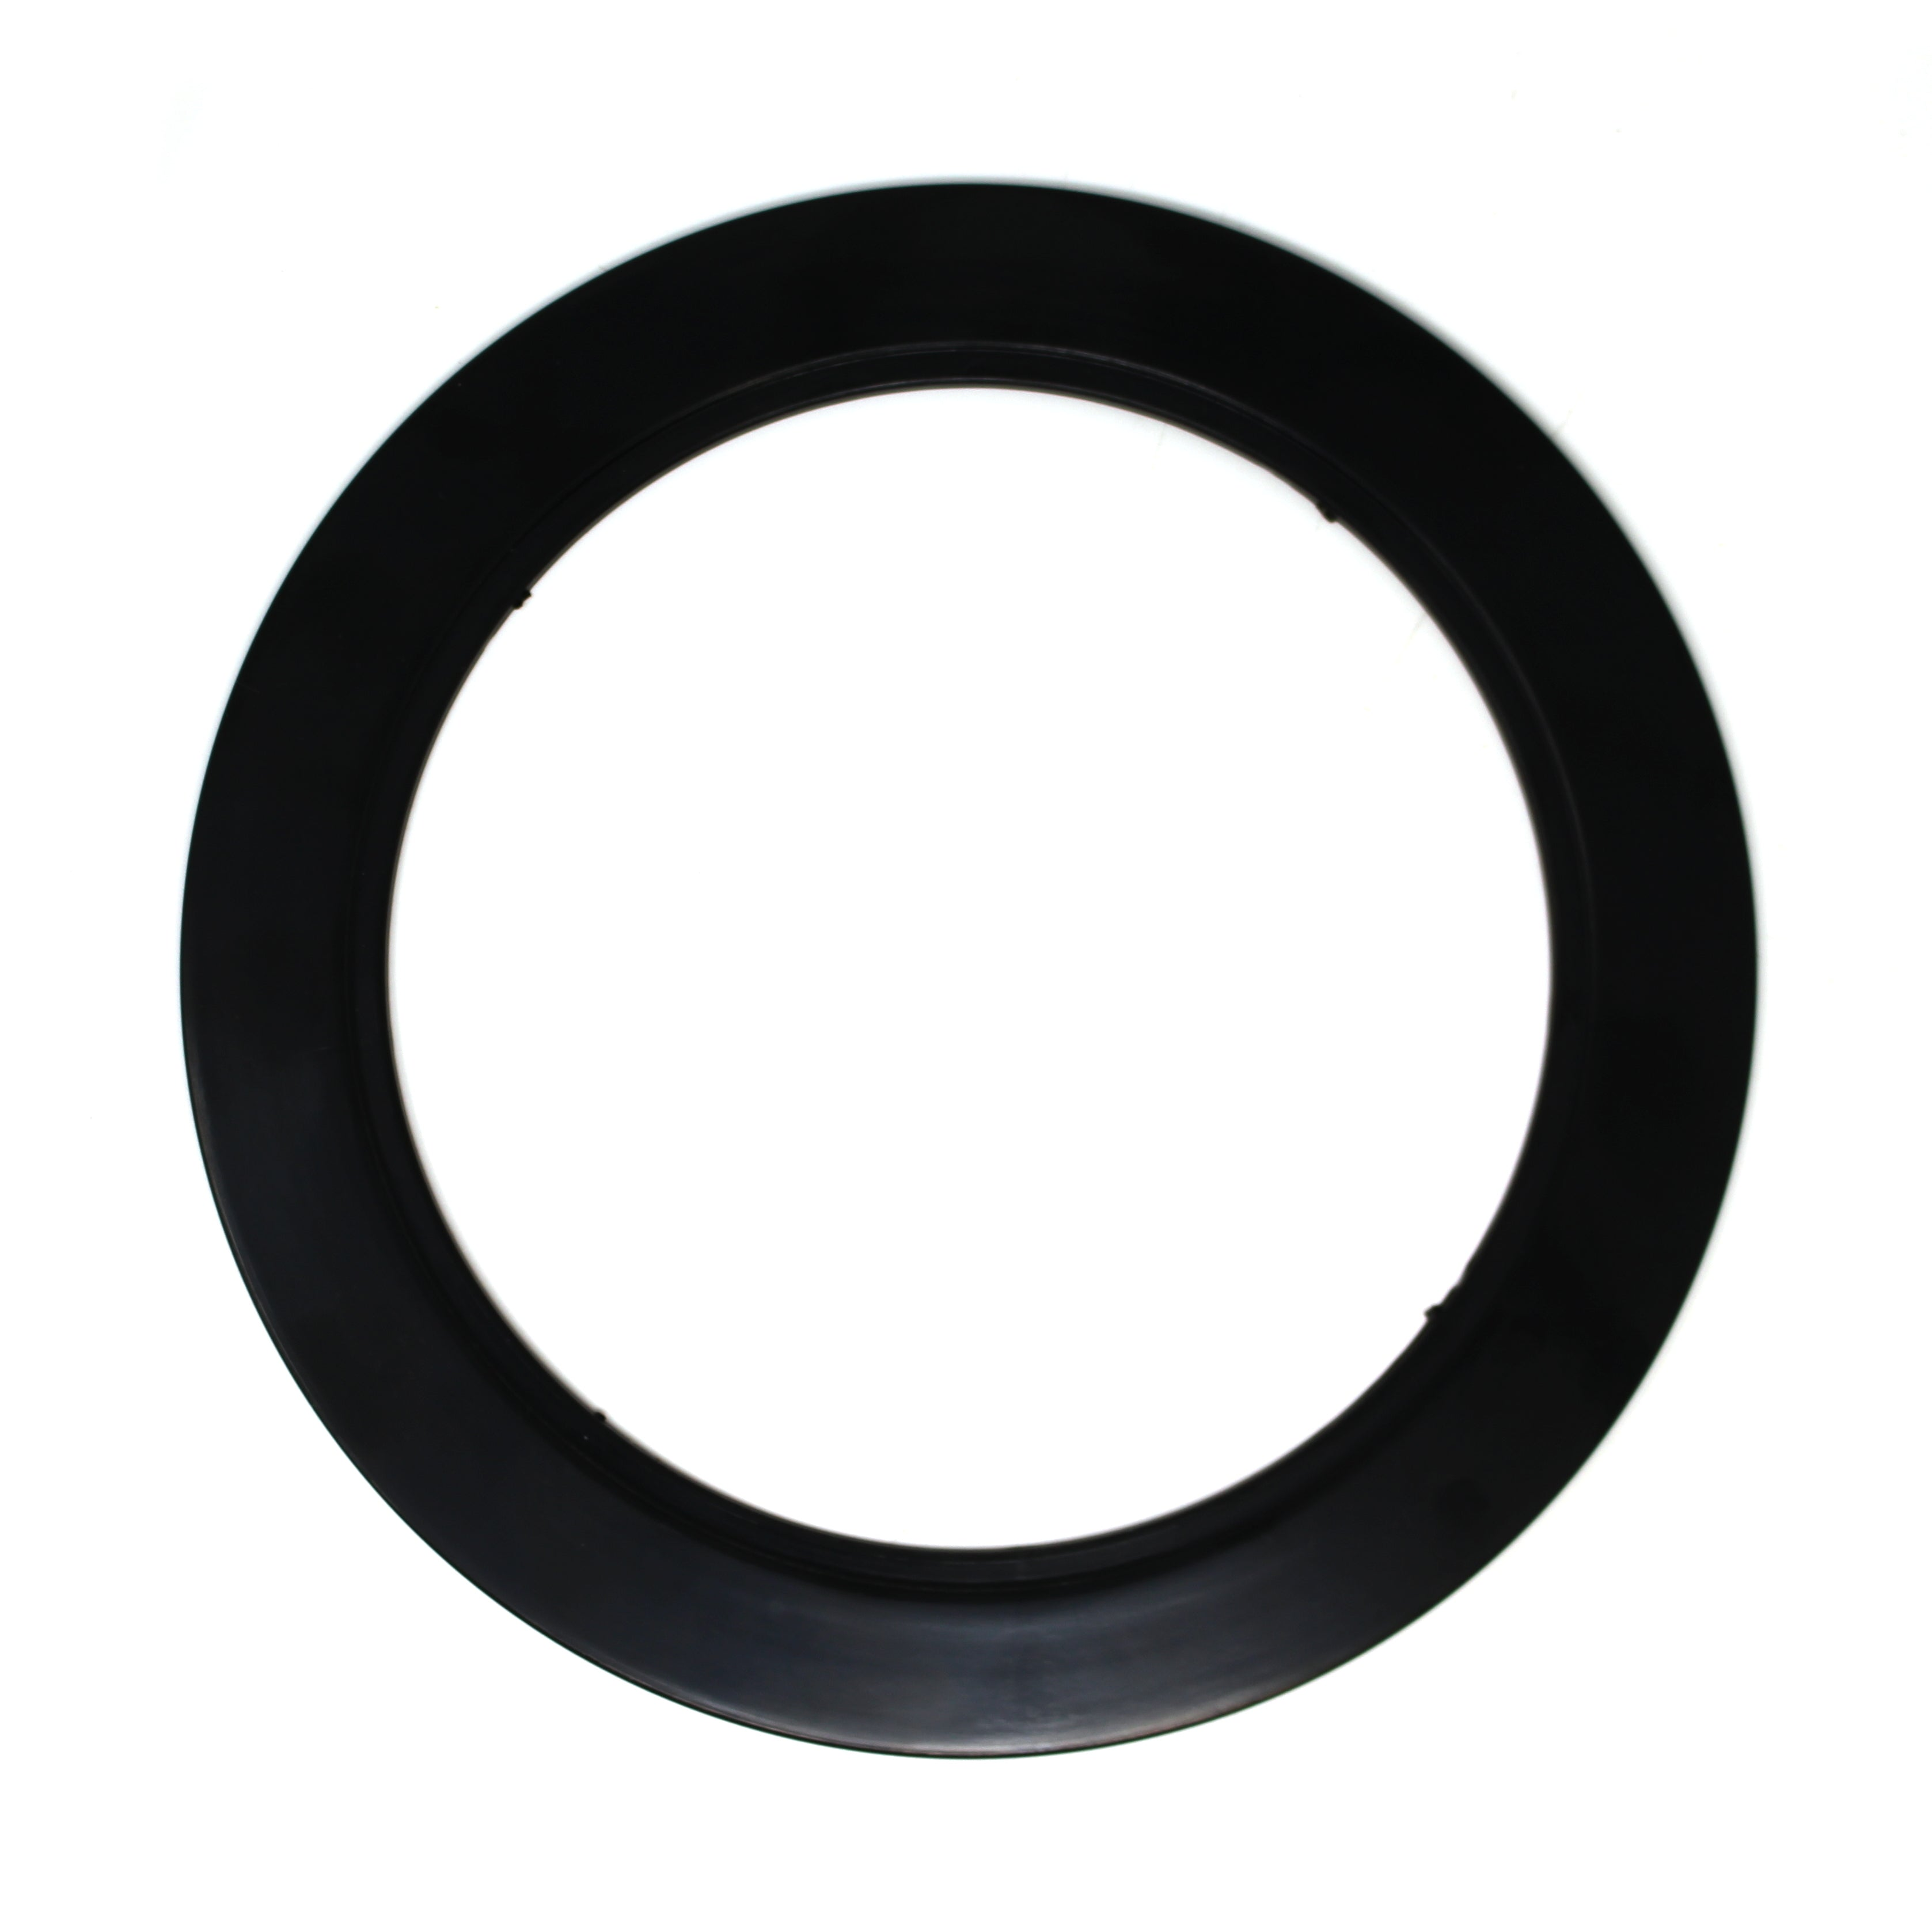 Plastic Black Light Trim Ring Recessed Can 6 Inch Over Size Oversized Jsp Manufacturing